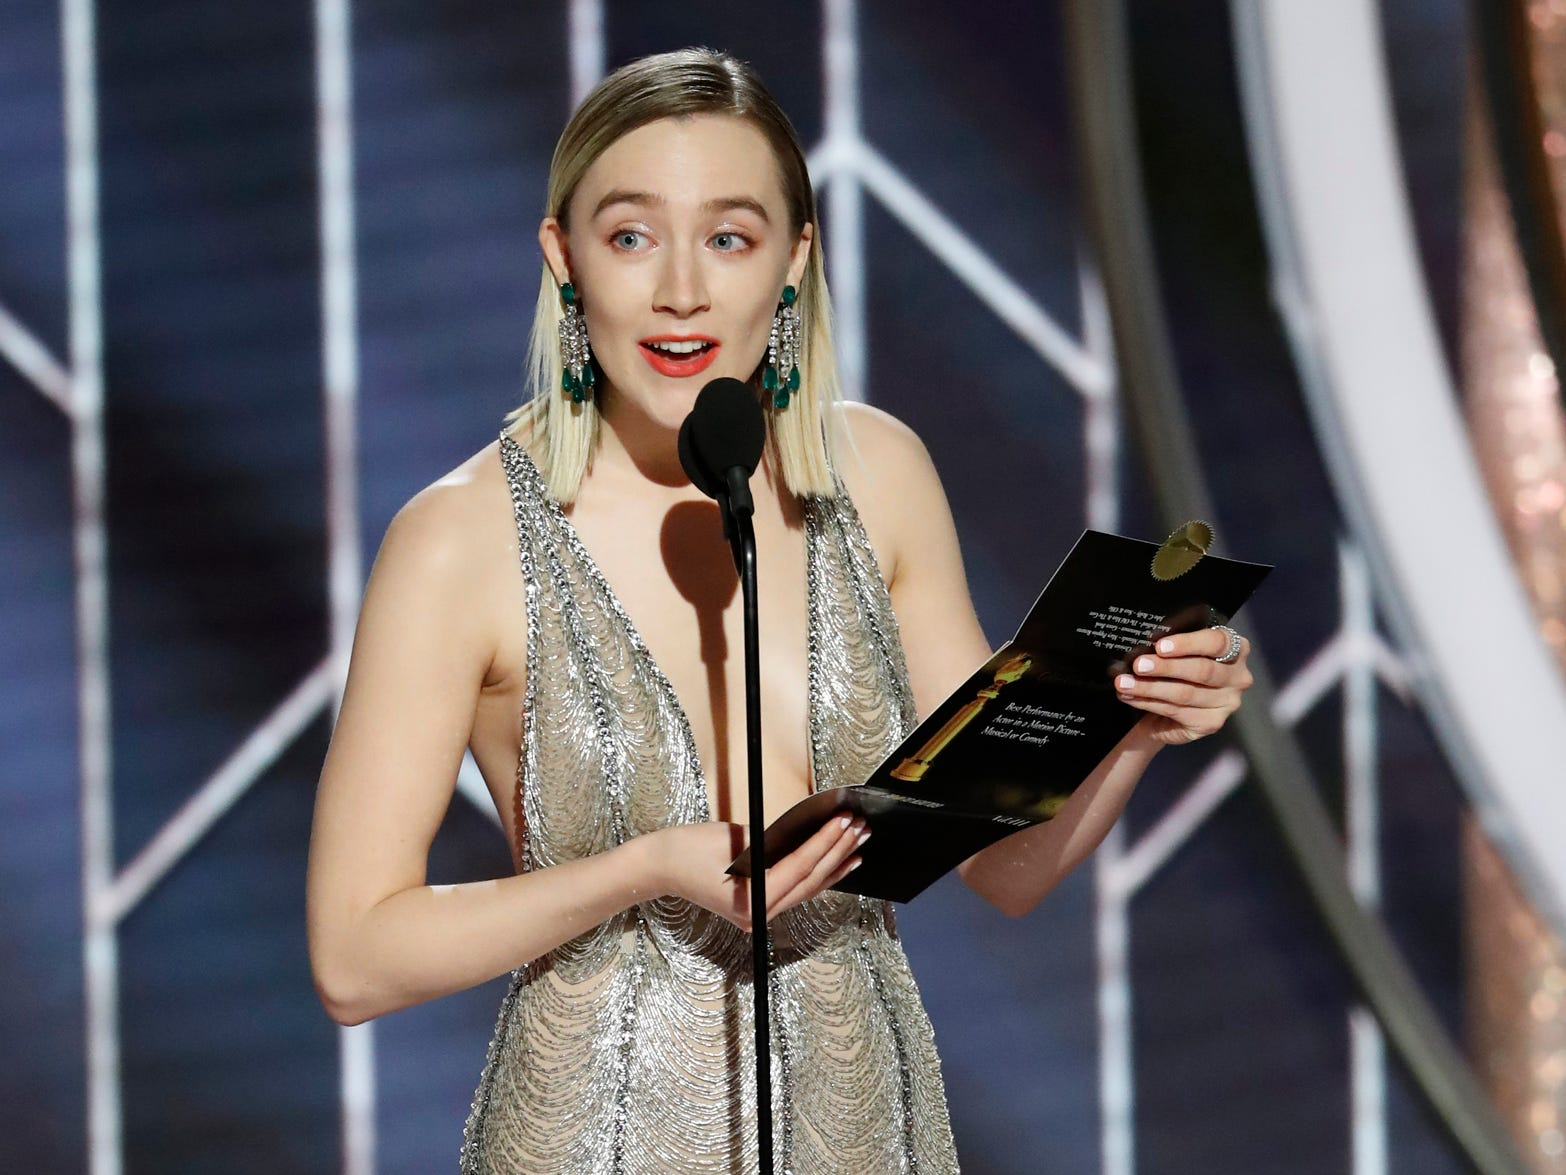 Saoirse Ronan presents during the 76th Golden Globe Awards.